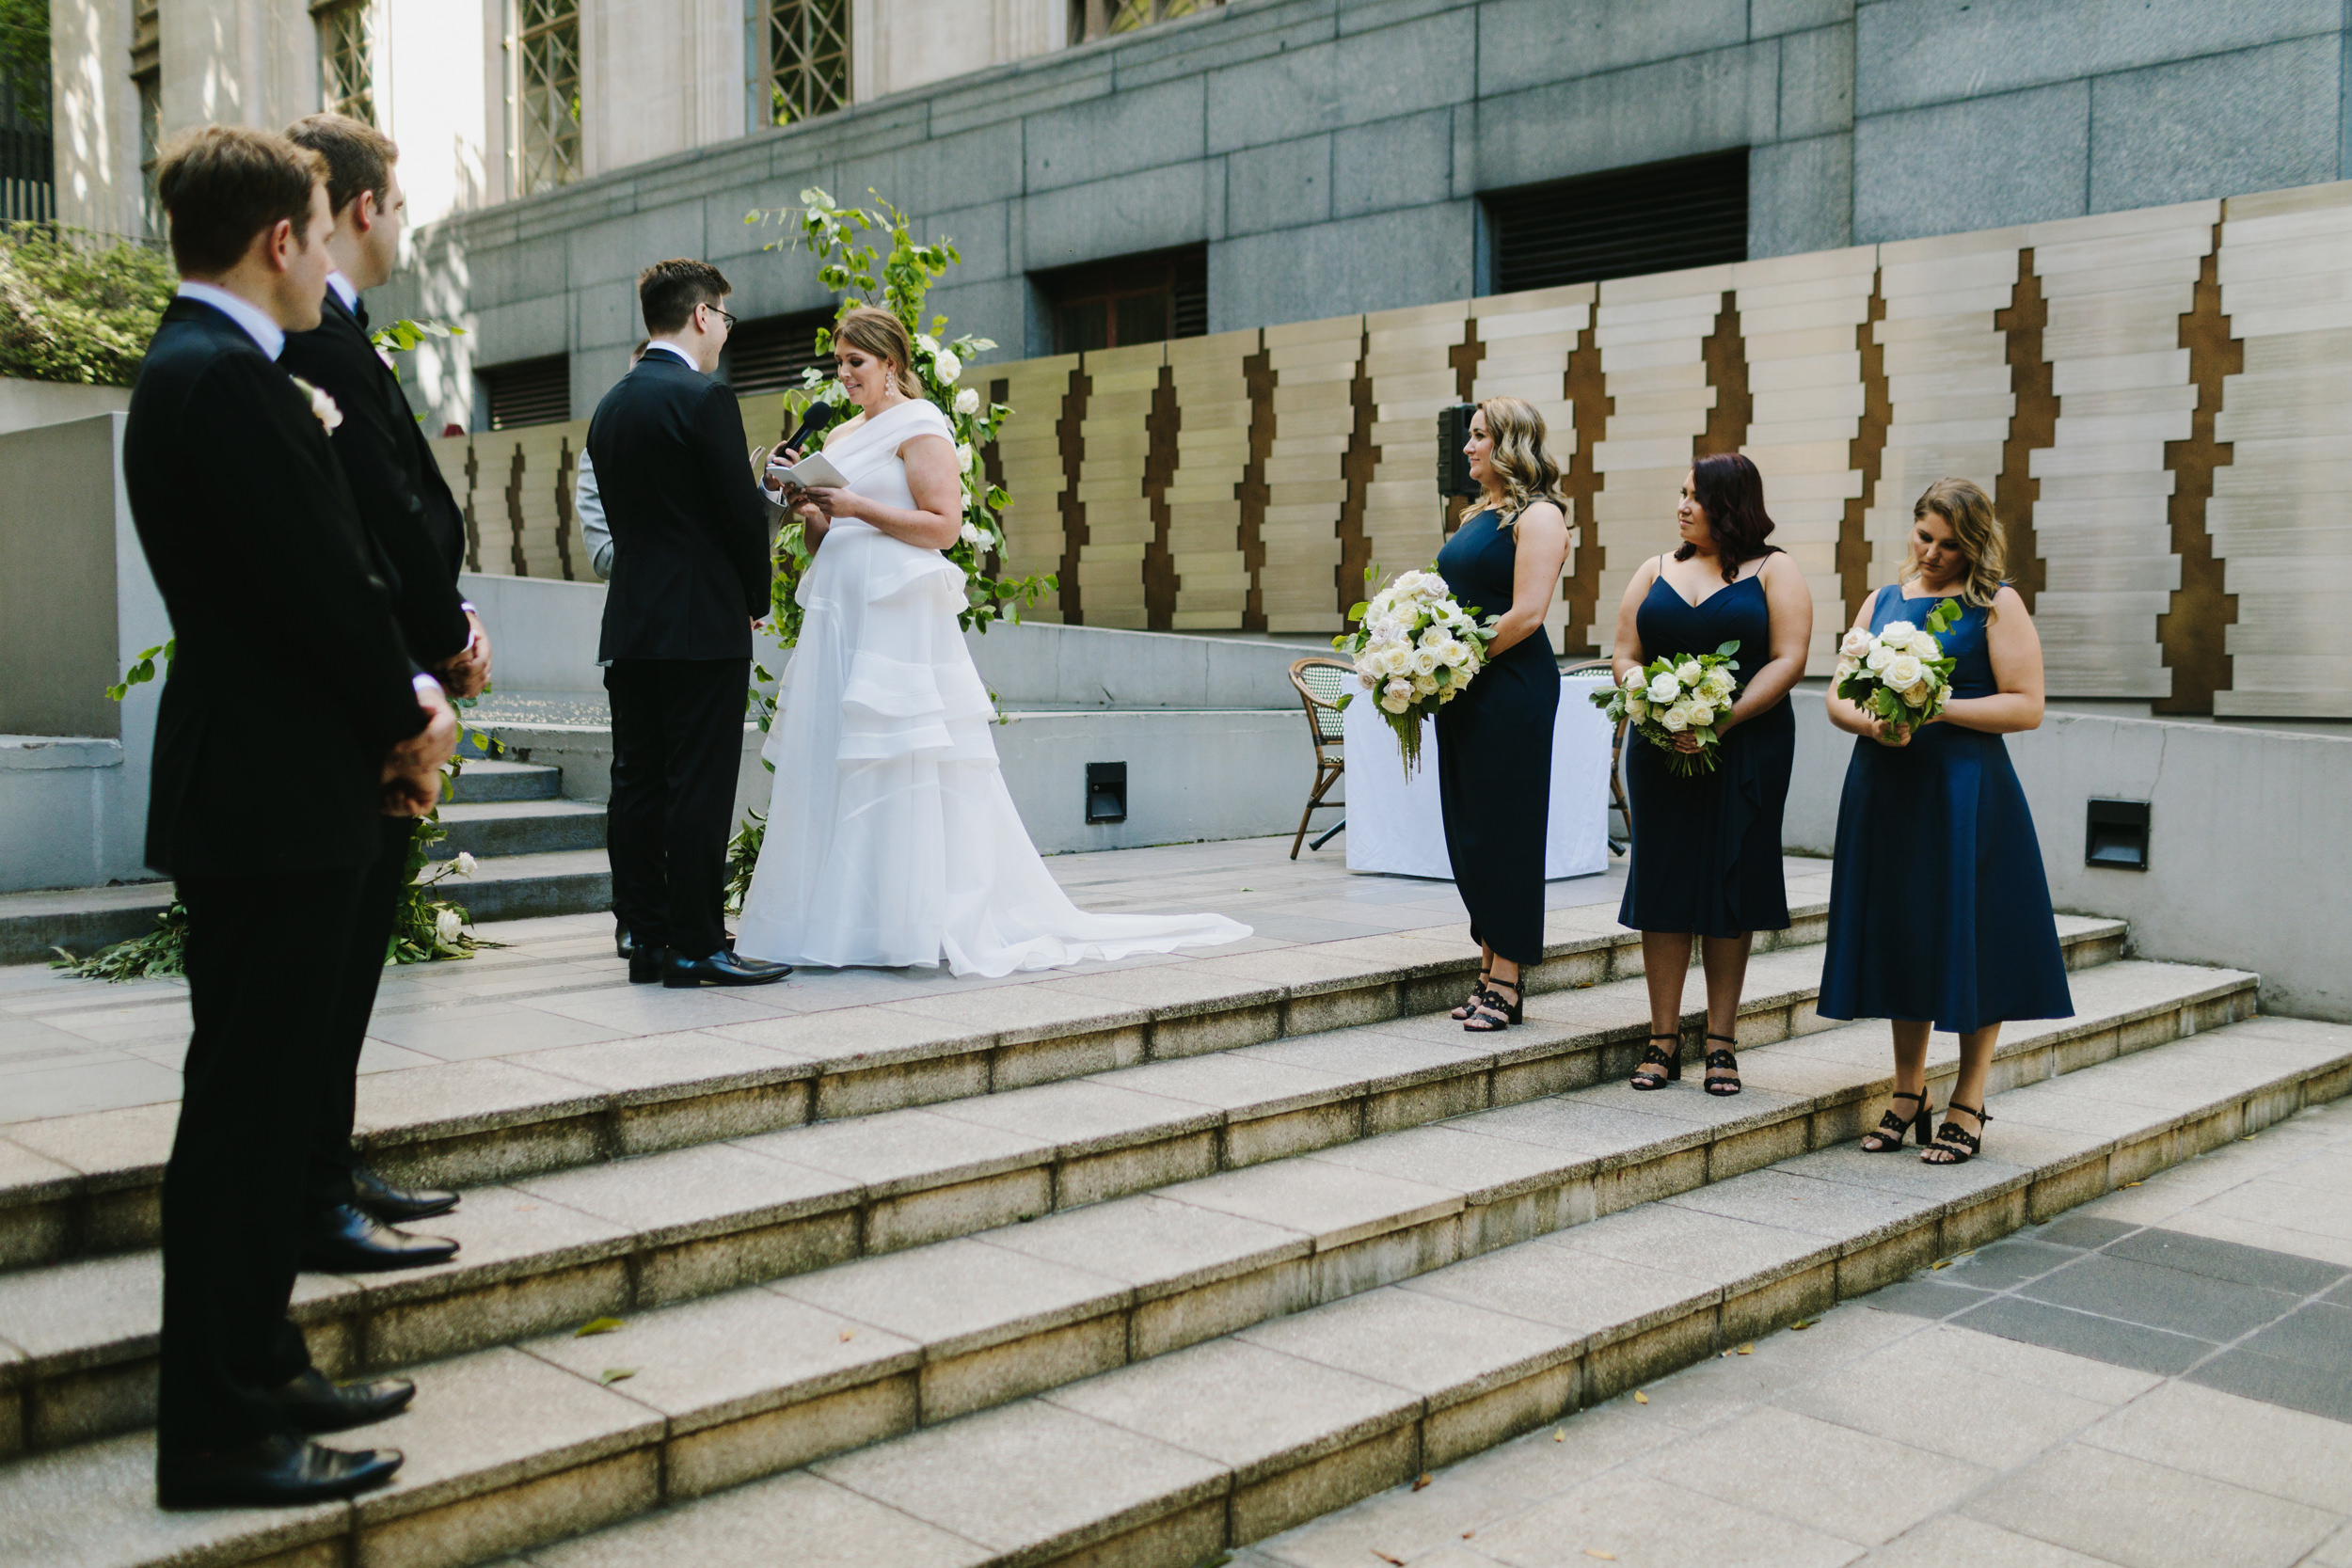 Melbourne_City_Rooftop_Wedding_Tyson_Brigette061.JPG